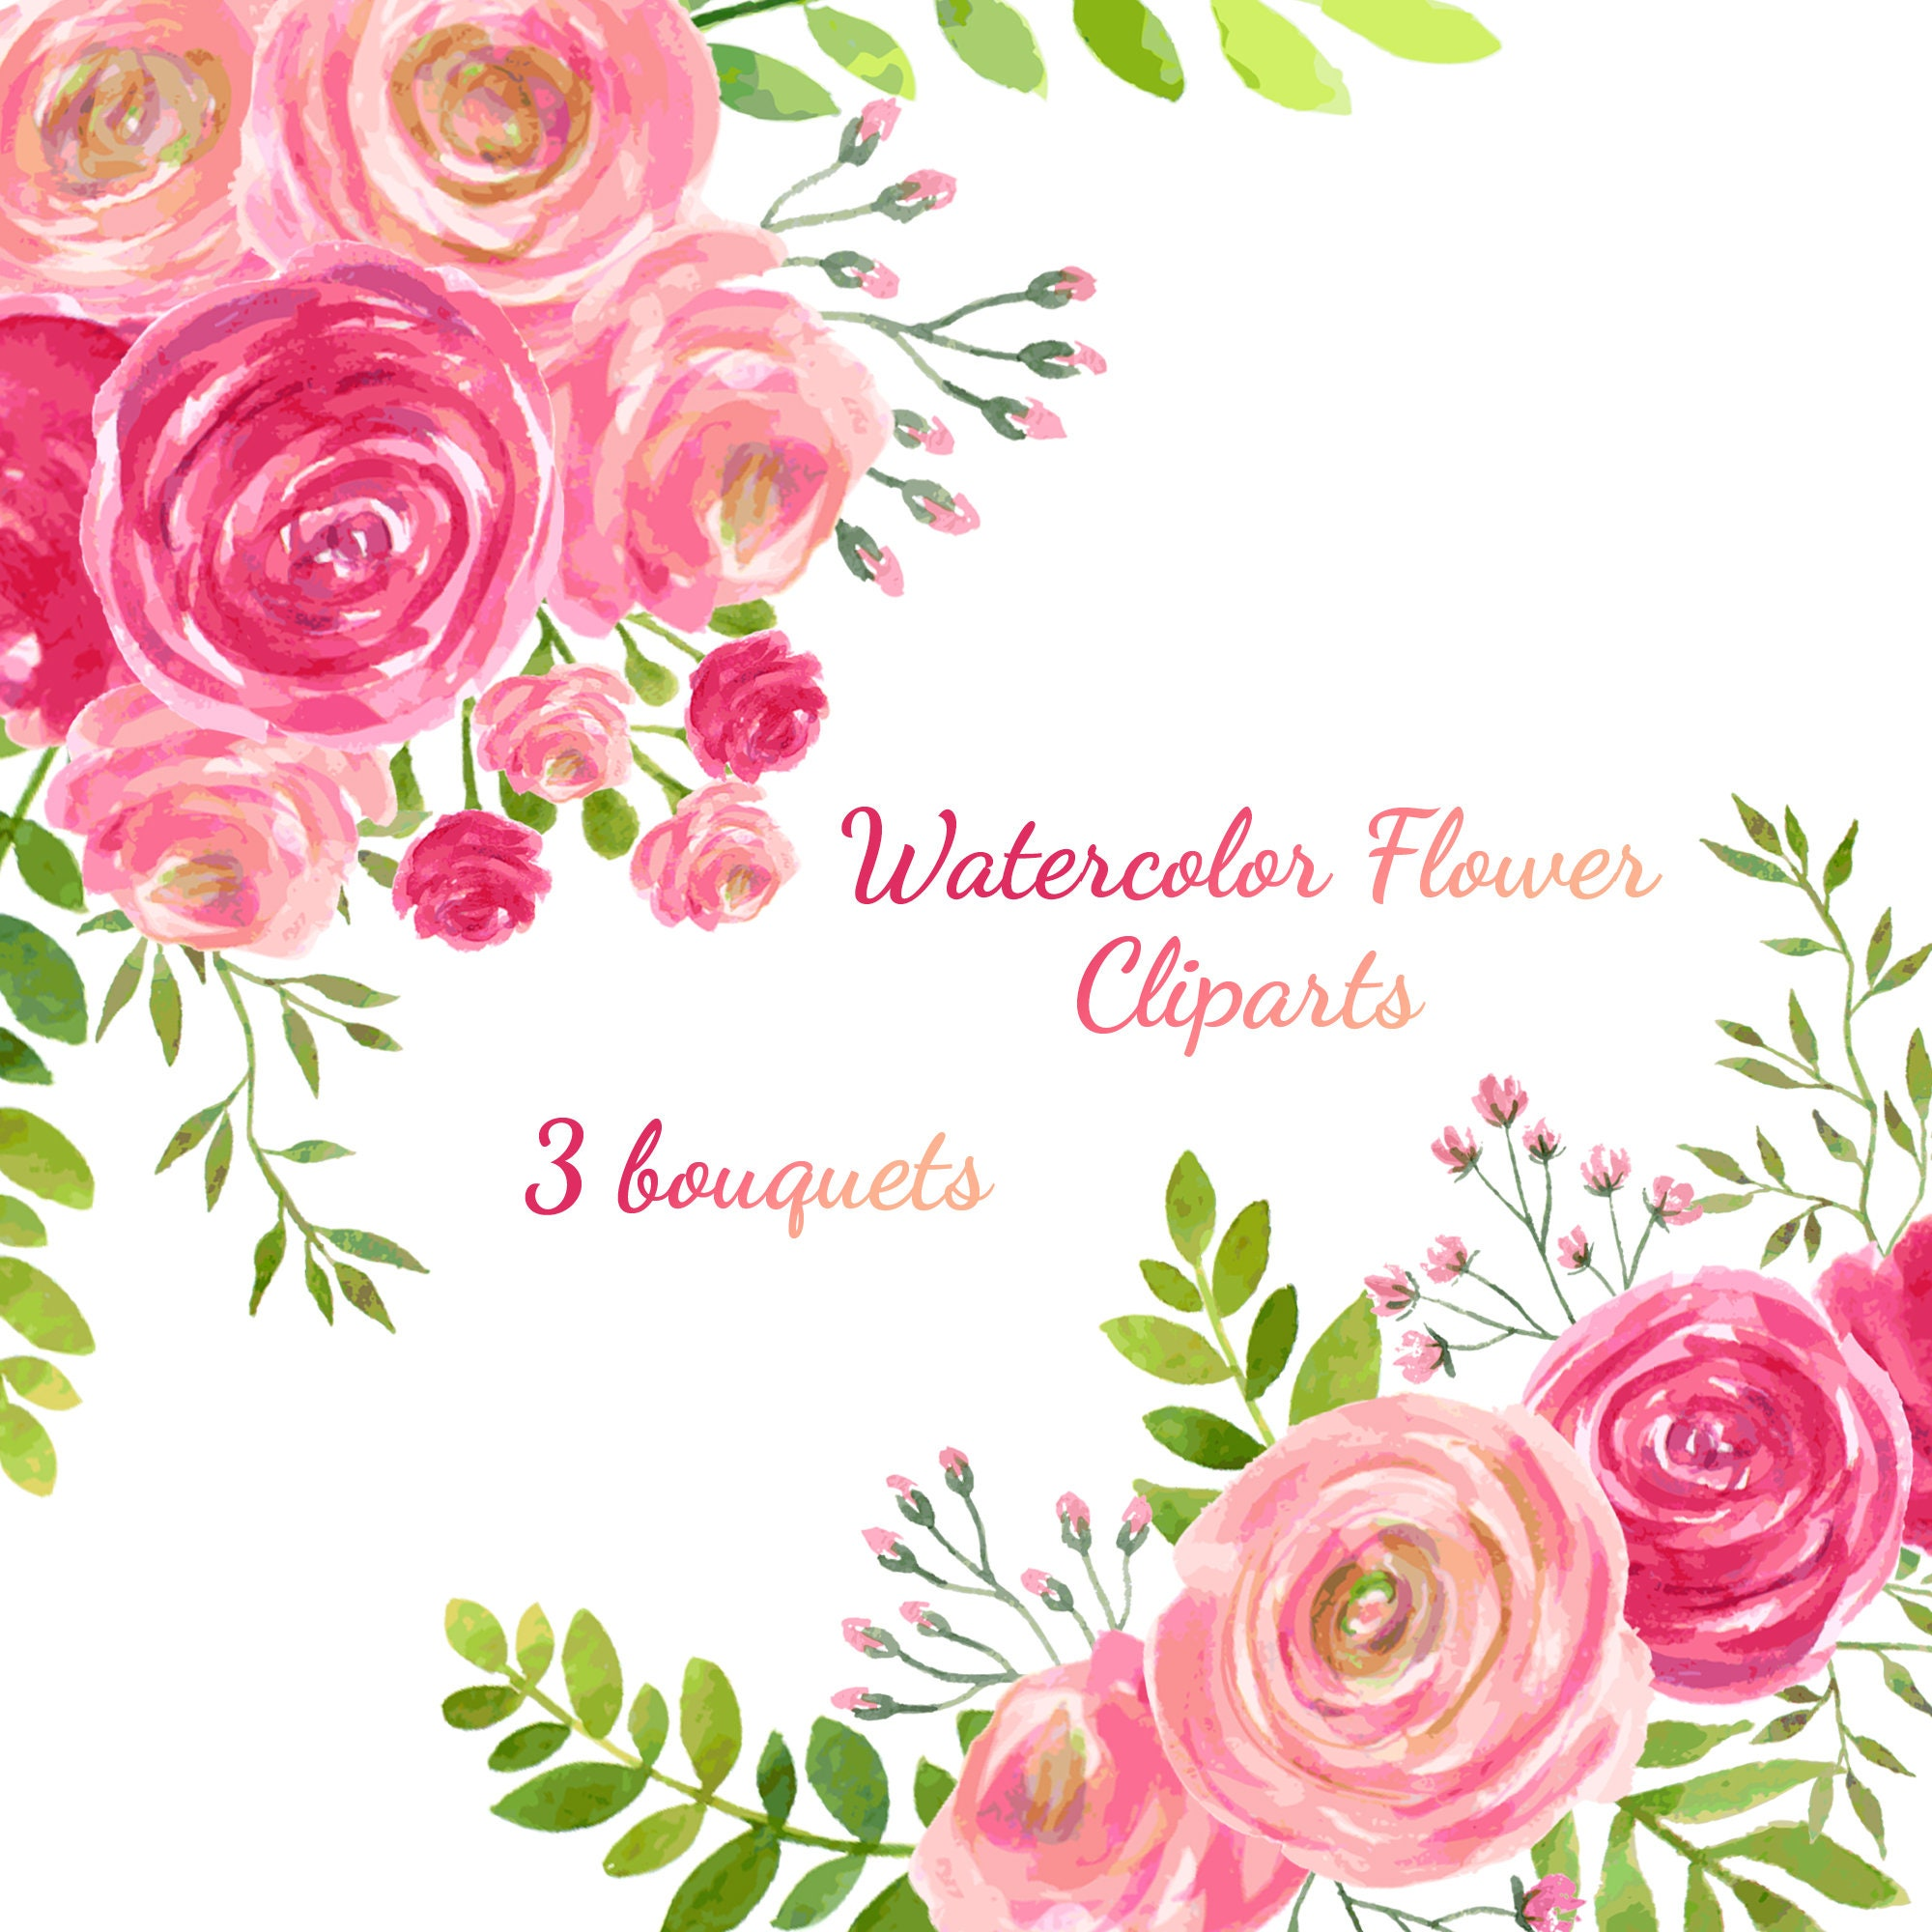 Wedding Floral Watercolor Flowers Watercolor Flowers Clipart Etsy